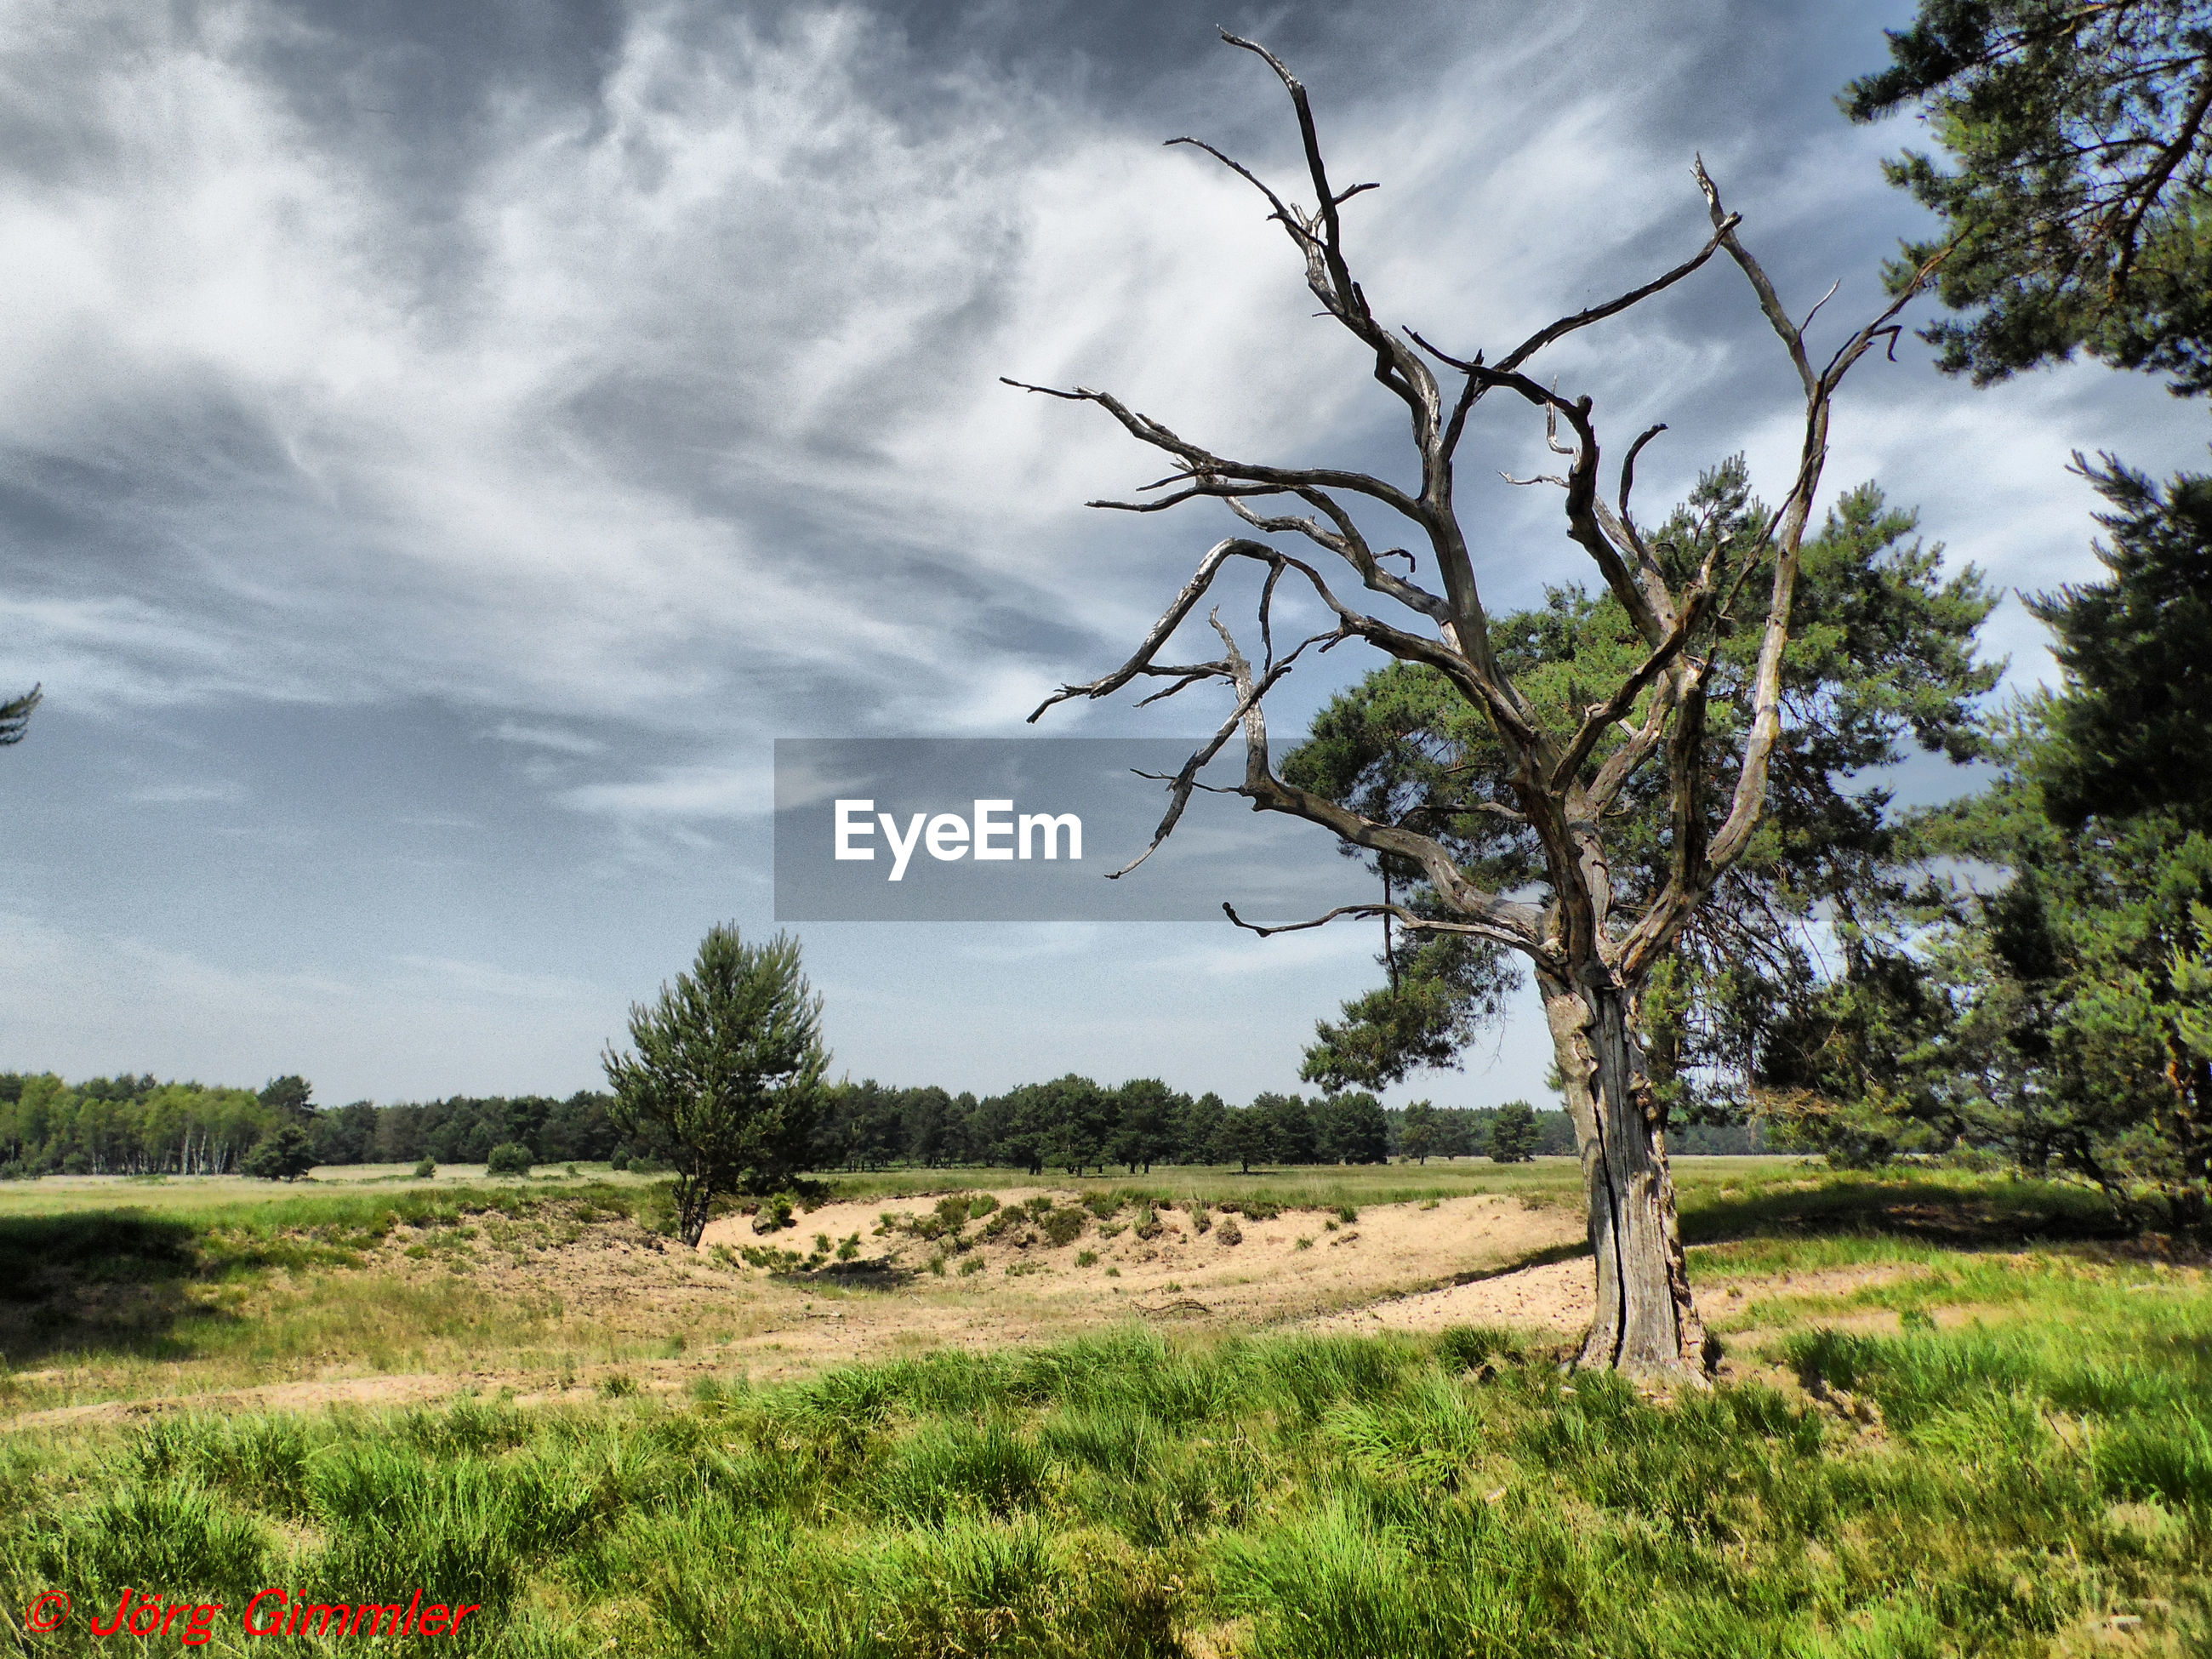 plant, sky, tree, landscape, cloud - sky, environment, land, field, tranquility, tranquil scene, grass, beauty in nature, nature, scenics - nature, no people, non-urban scene, growth, day, outdoors, rural scene